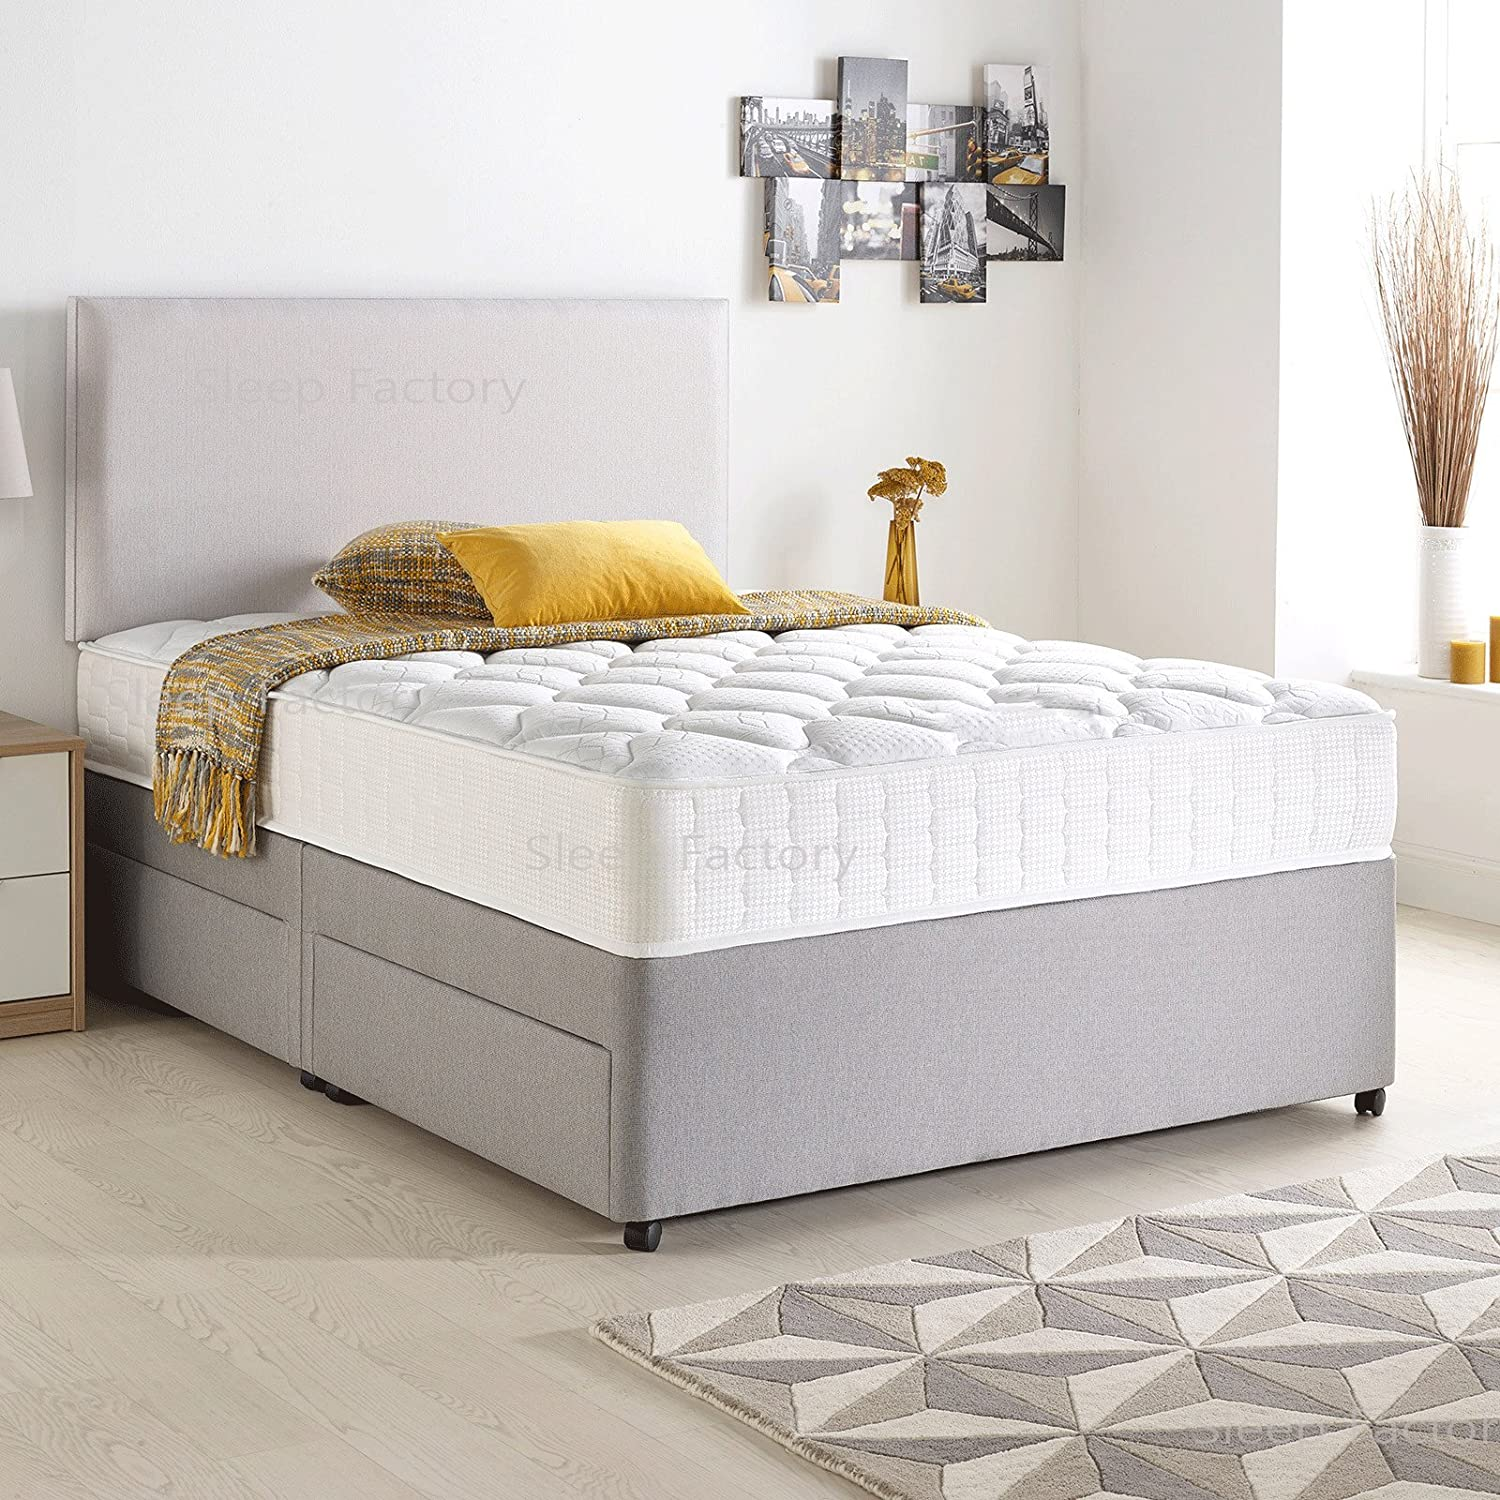 Divan Bed Set with Quilted Ortho Mattress,Headboard and 2 free drawers, Silver Suede, 3FT Single (90 cm x 190 cm) Sleep Factory Limited